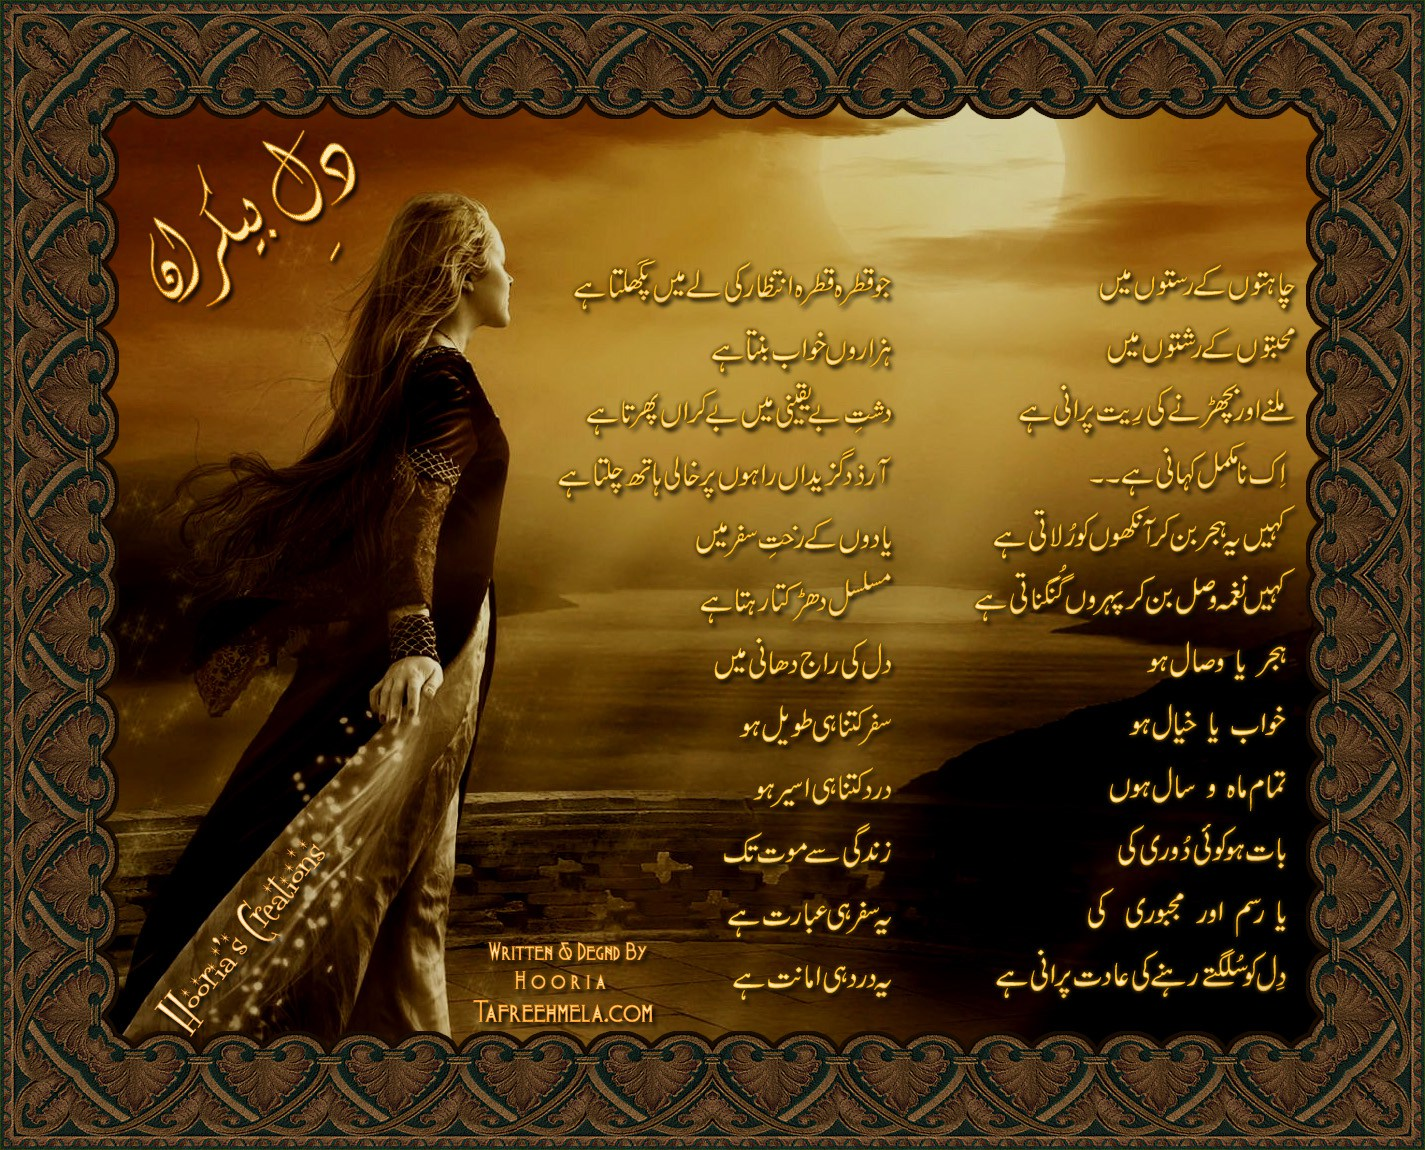 poem wallpaper latest High Definition Wallpapers 1425x1150